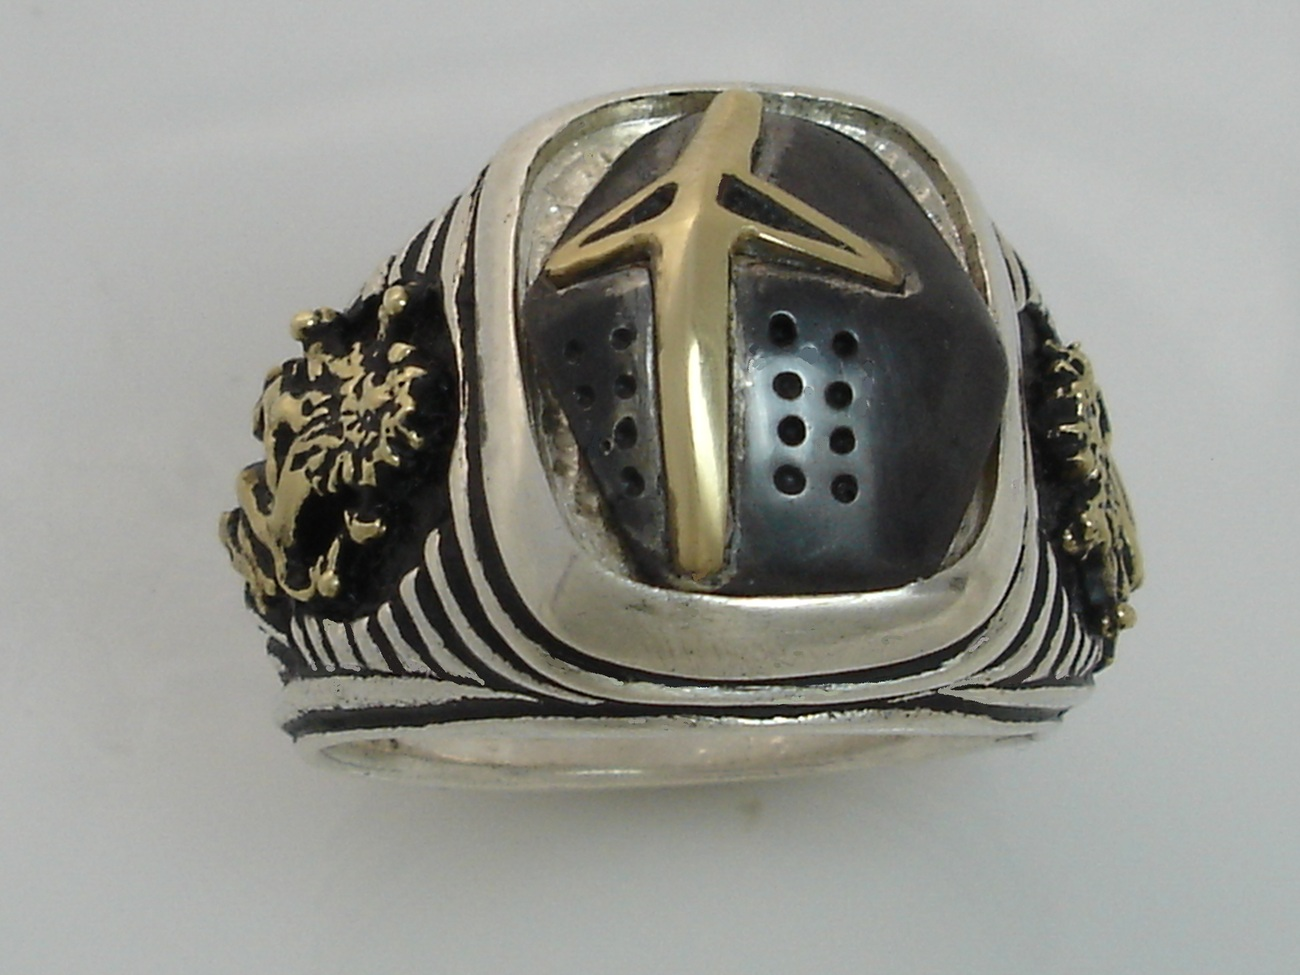 Ivanhoe Black Knight 10 Karat Gold Lions Sterling Silver 925 signet ring